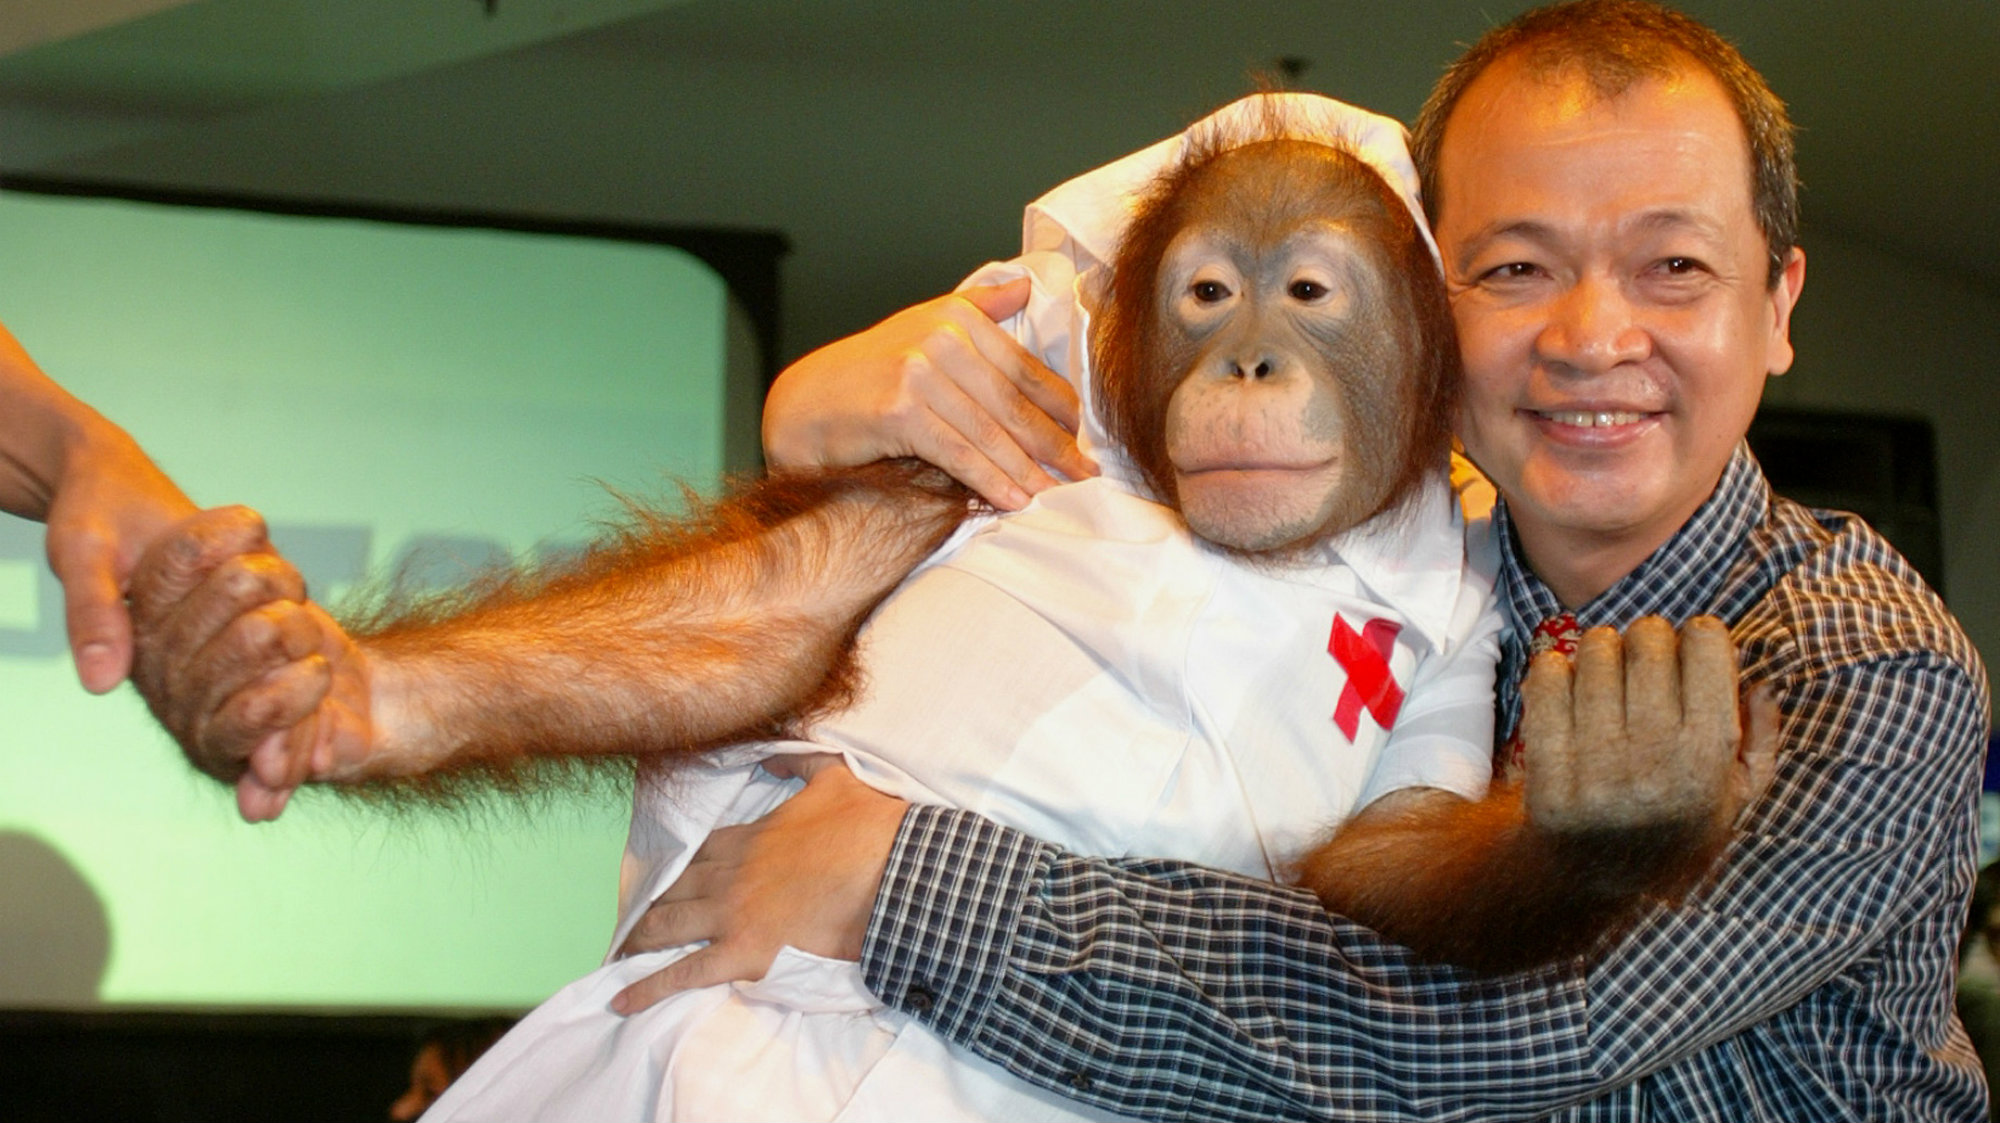 An orangutan, dressed as a nurse, models with a Filipino doctor during a fashion show for dogs at a shopping mall in Manila October 8, 2005.